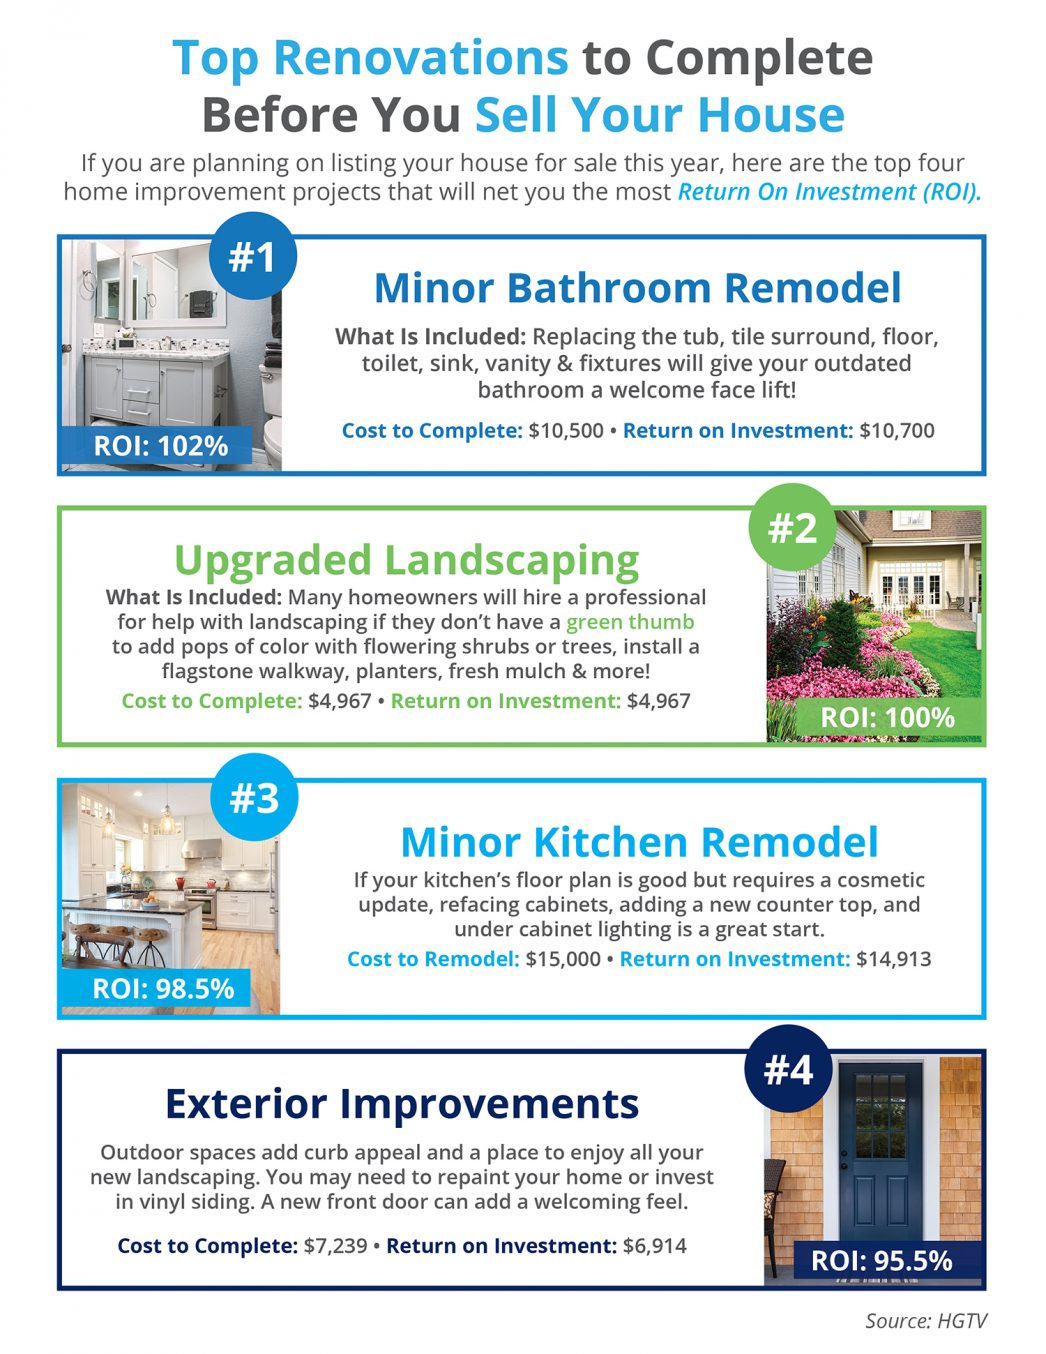 Top Renovations to Complete Before You Sell Your House.jpg